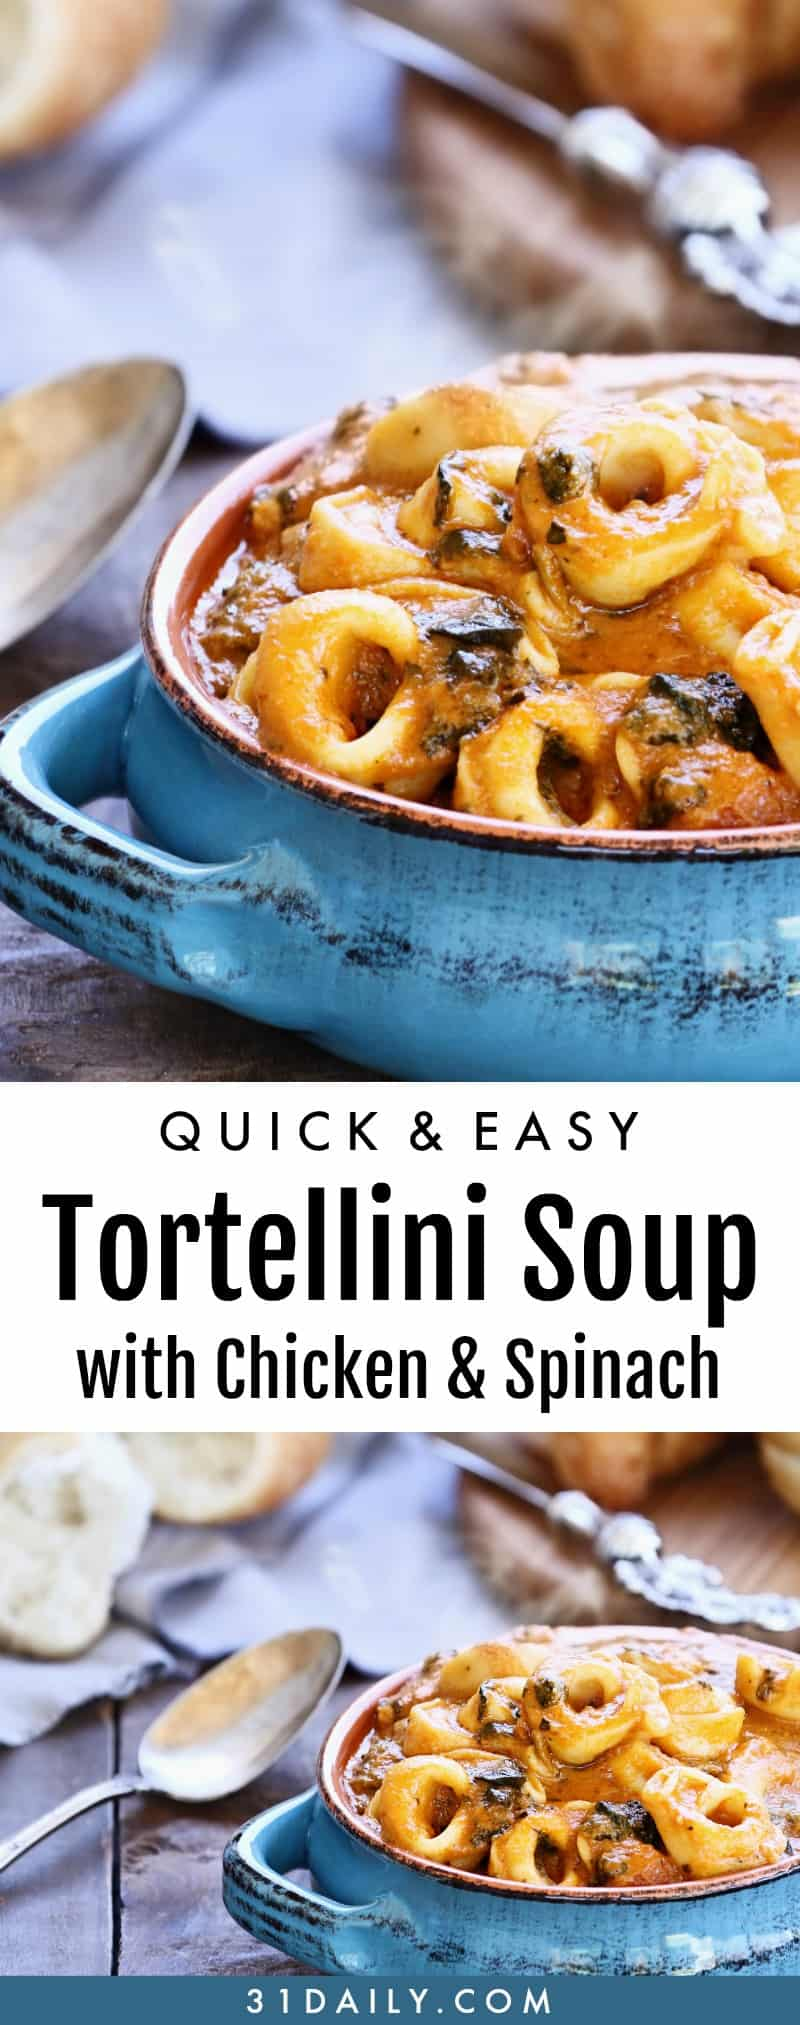 A Quick and Easy Tortellini Soup with Chicken and Spinach | 31Daily.com